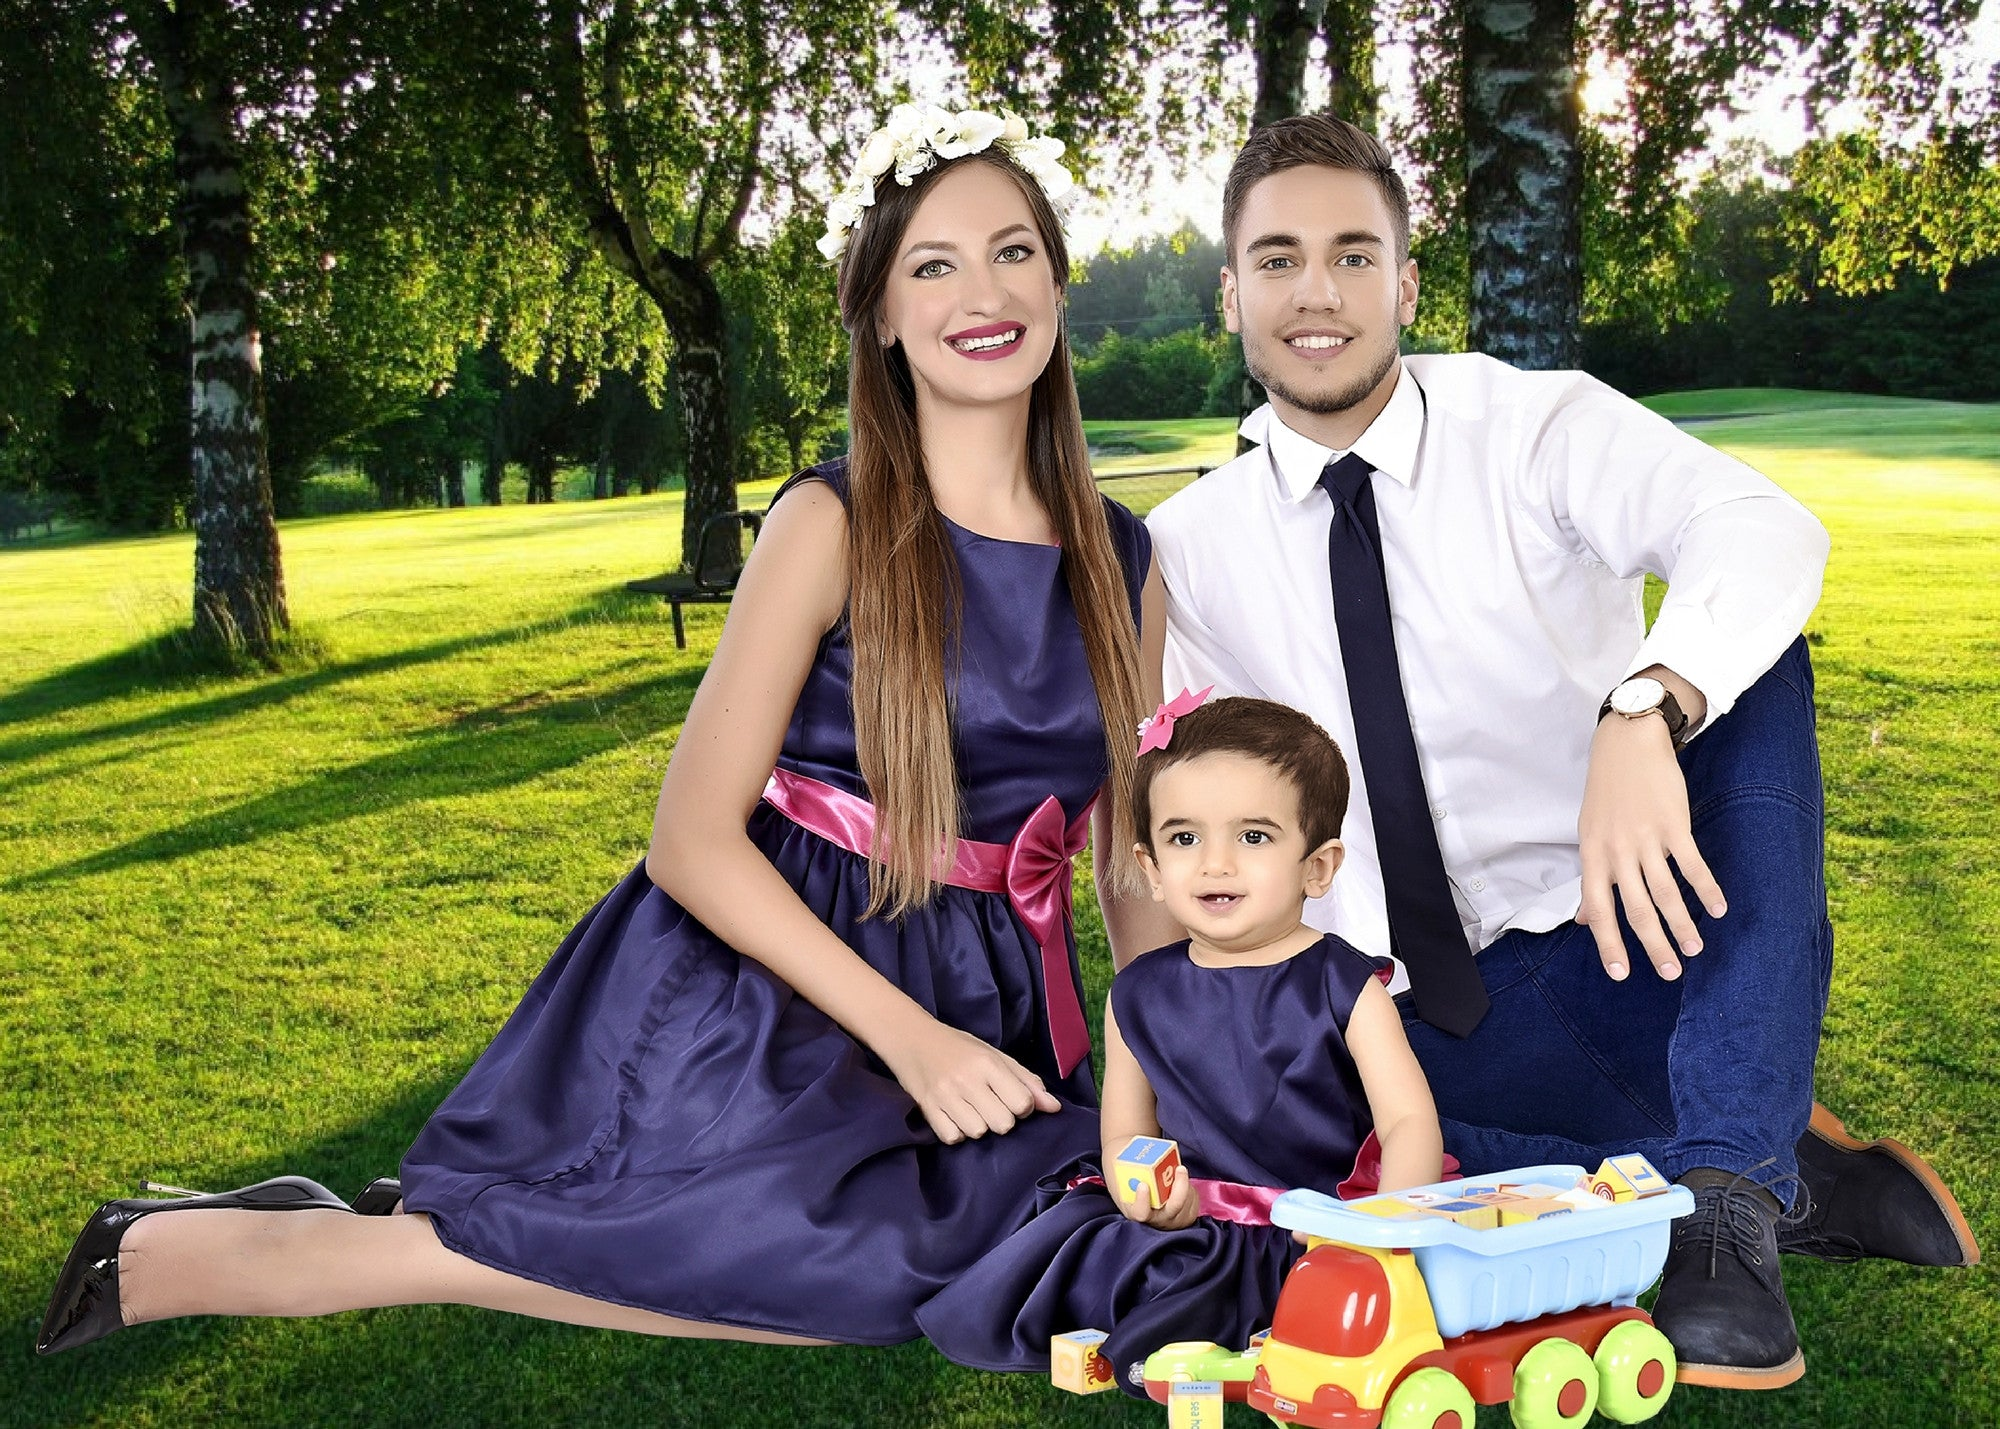 Classy Blue Mother Baby Dresses With A Matching Tie For Dad